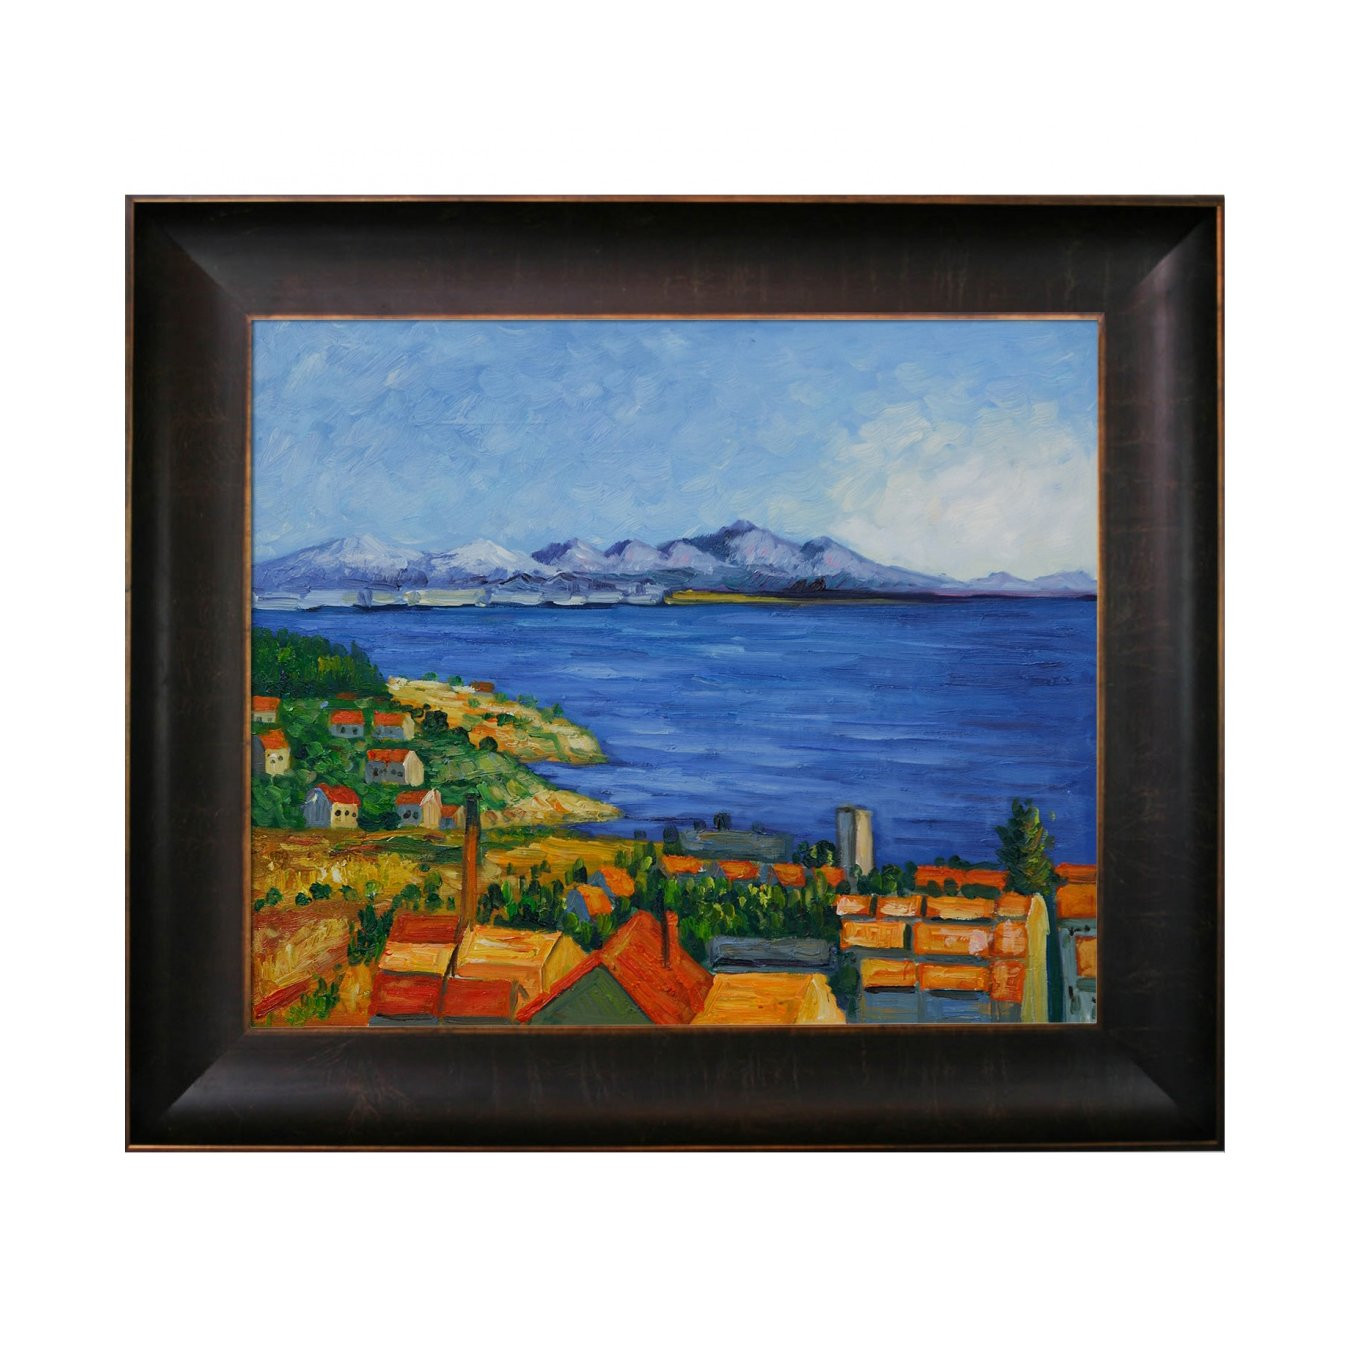 Best ideas about Overstock Wall Art . Save or Pin Overstock Art CZ730 FR X24 Paul Cezanne The Gulf Now.